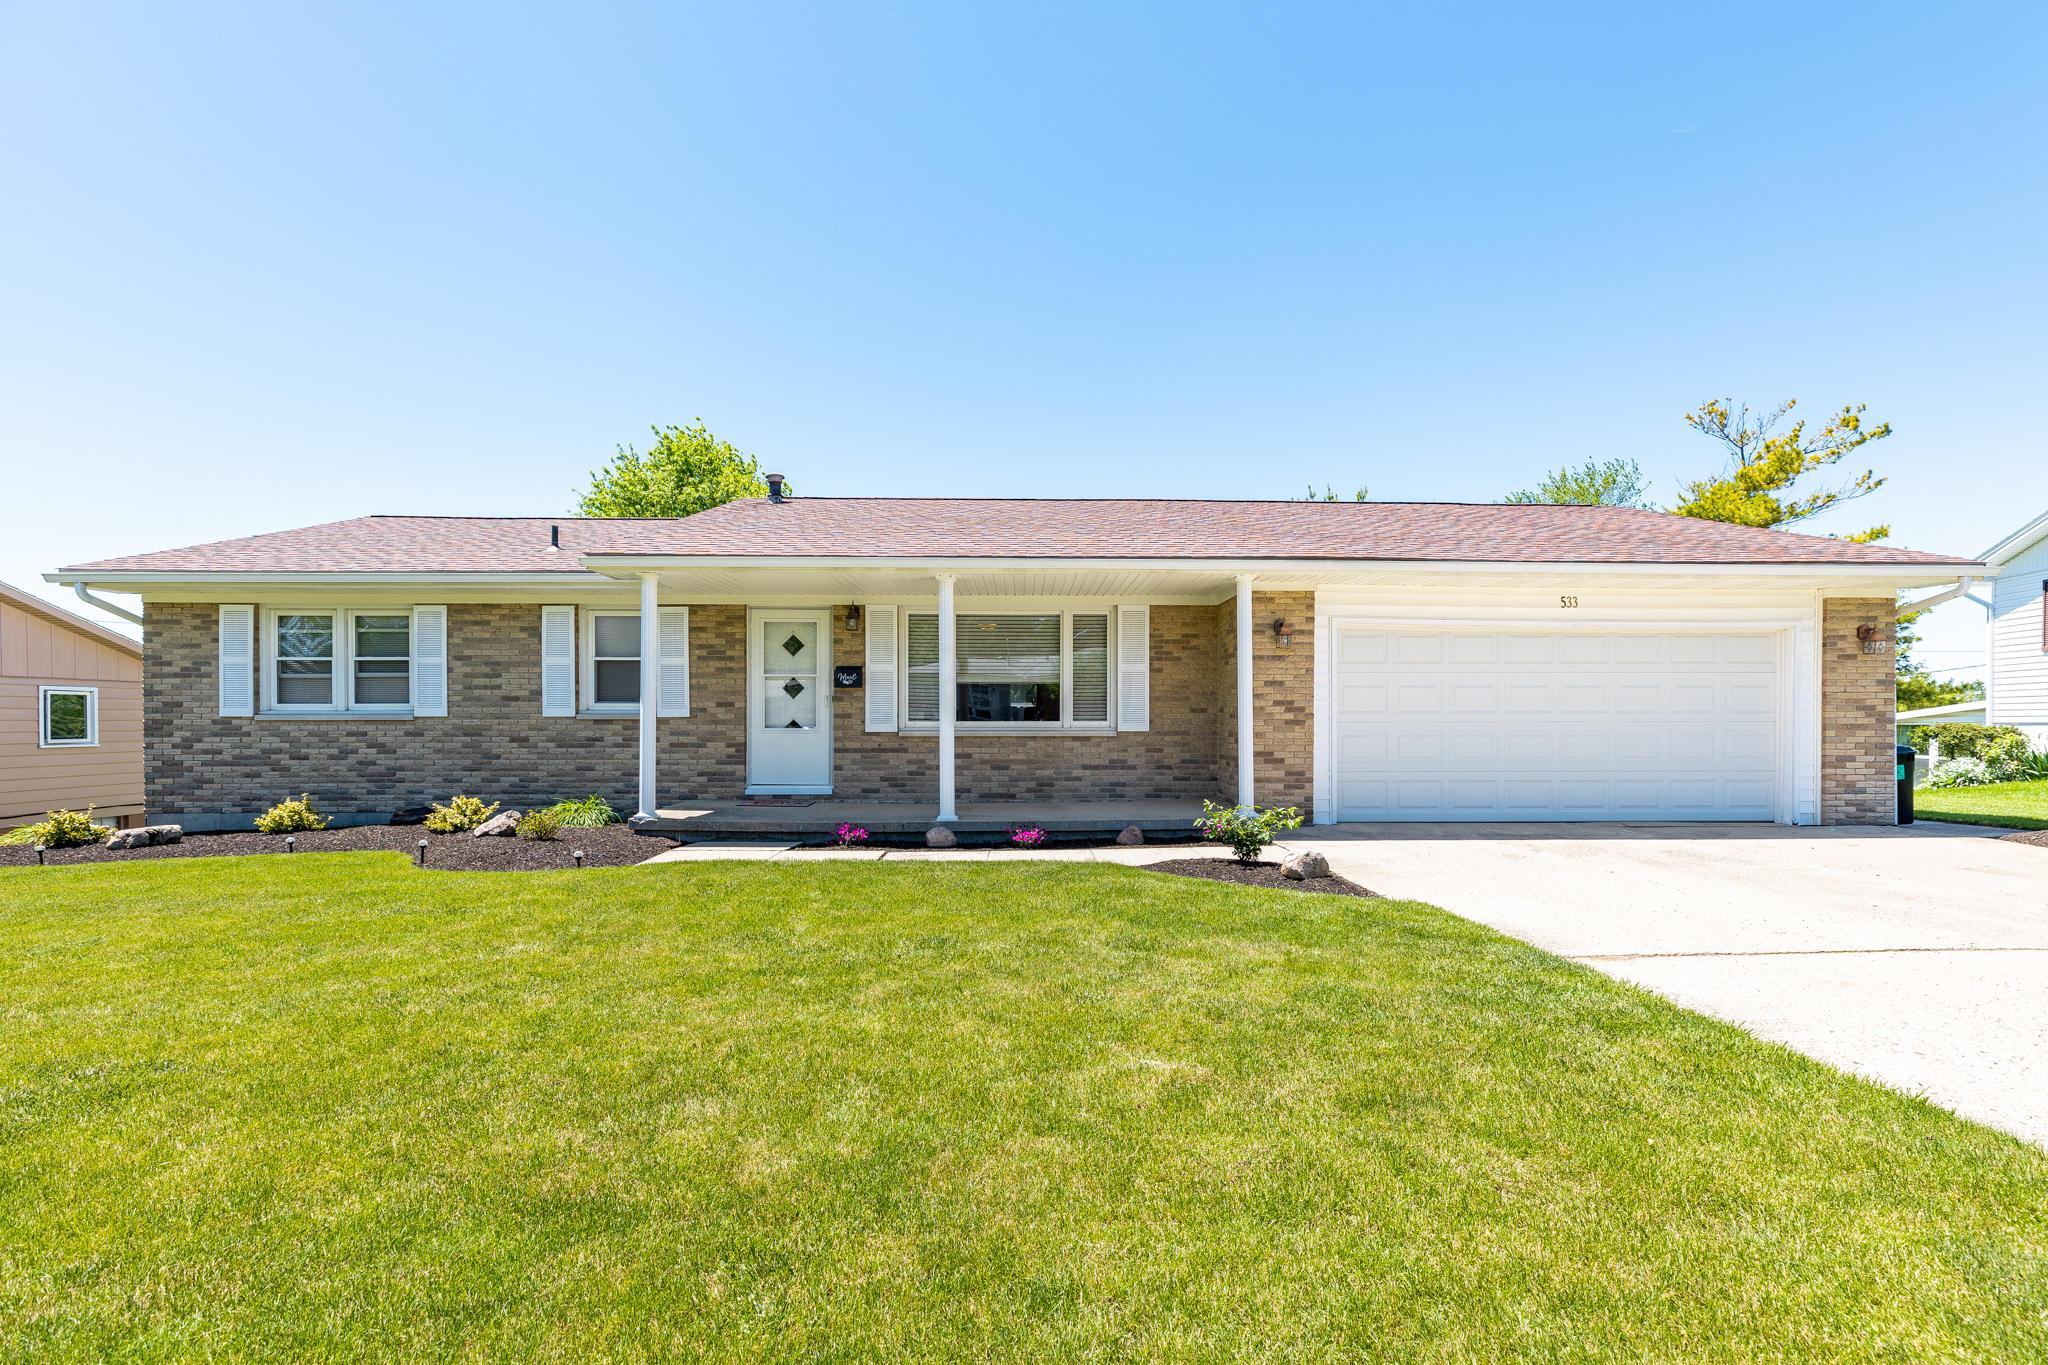 533 Hillcrest Drive, Bellefontaine, Ohio 43311, 3 Bedrooms Bedrooms, ,2 BathroomsBathrooms,Residential,For Sale,Hillcrest,220017267